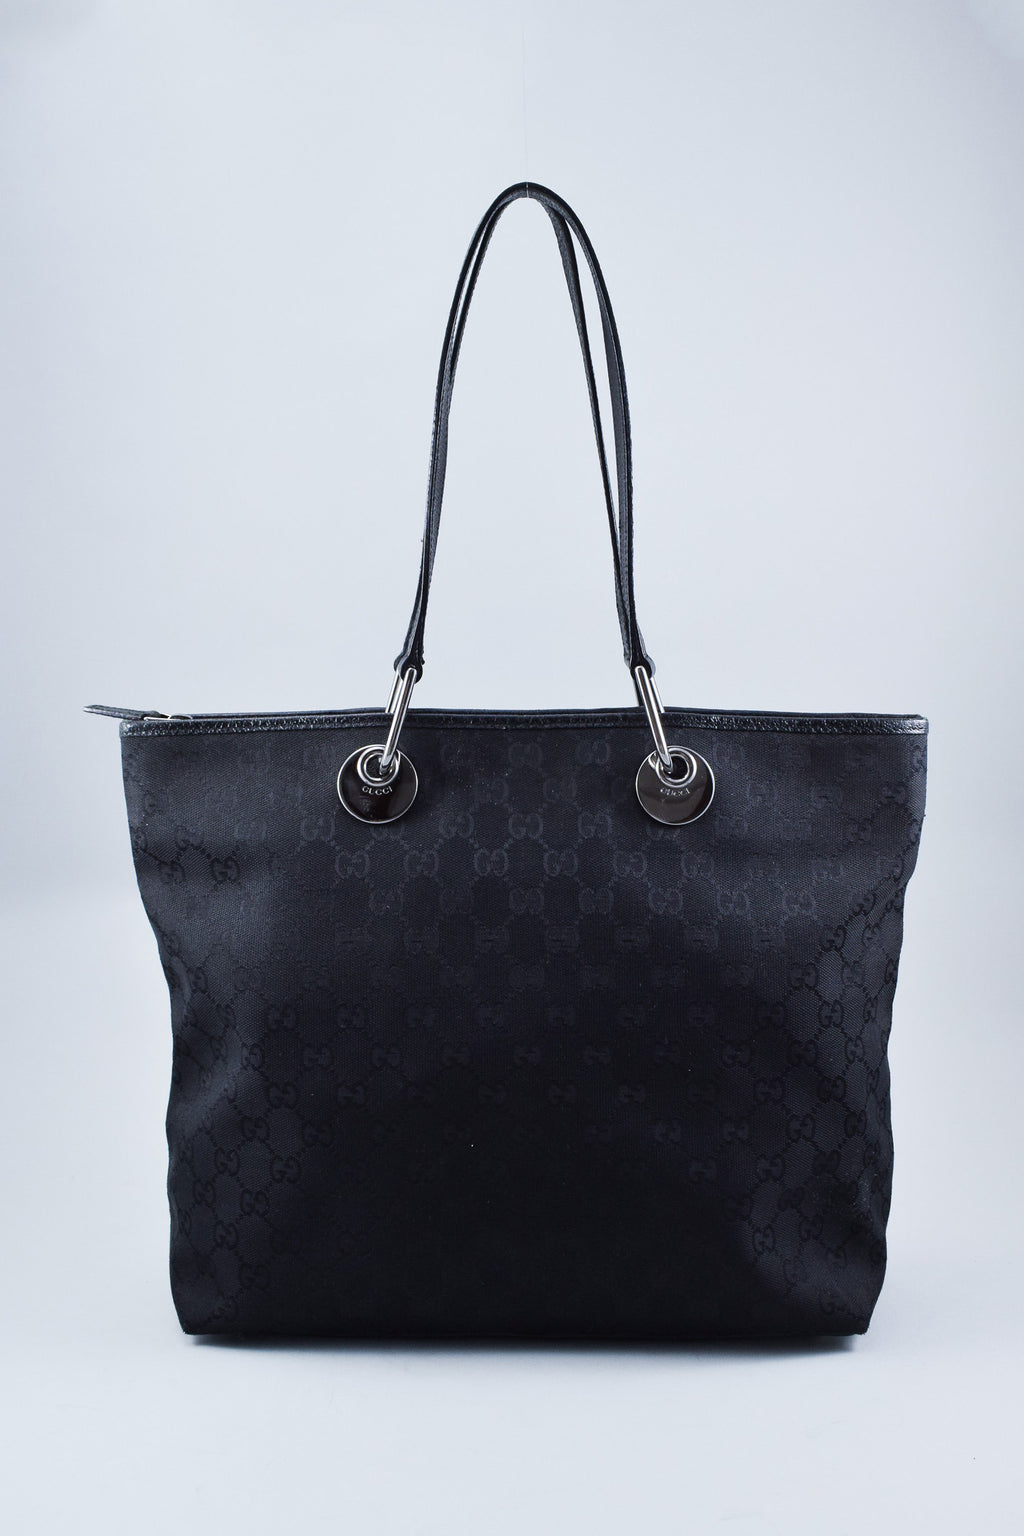 Gucci Black GG Canvas Tote w/ Leather Handles